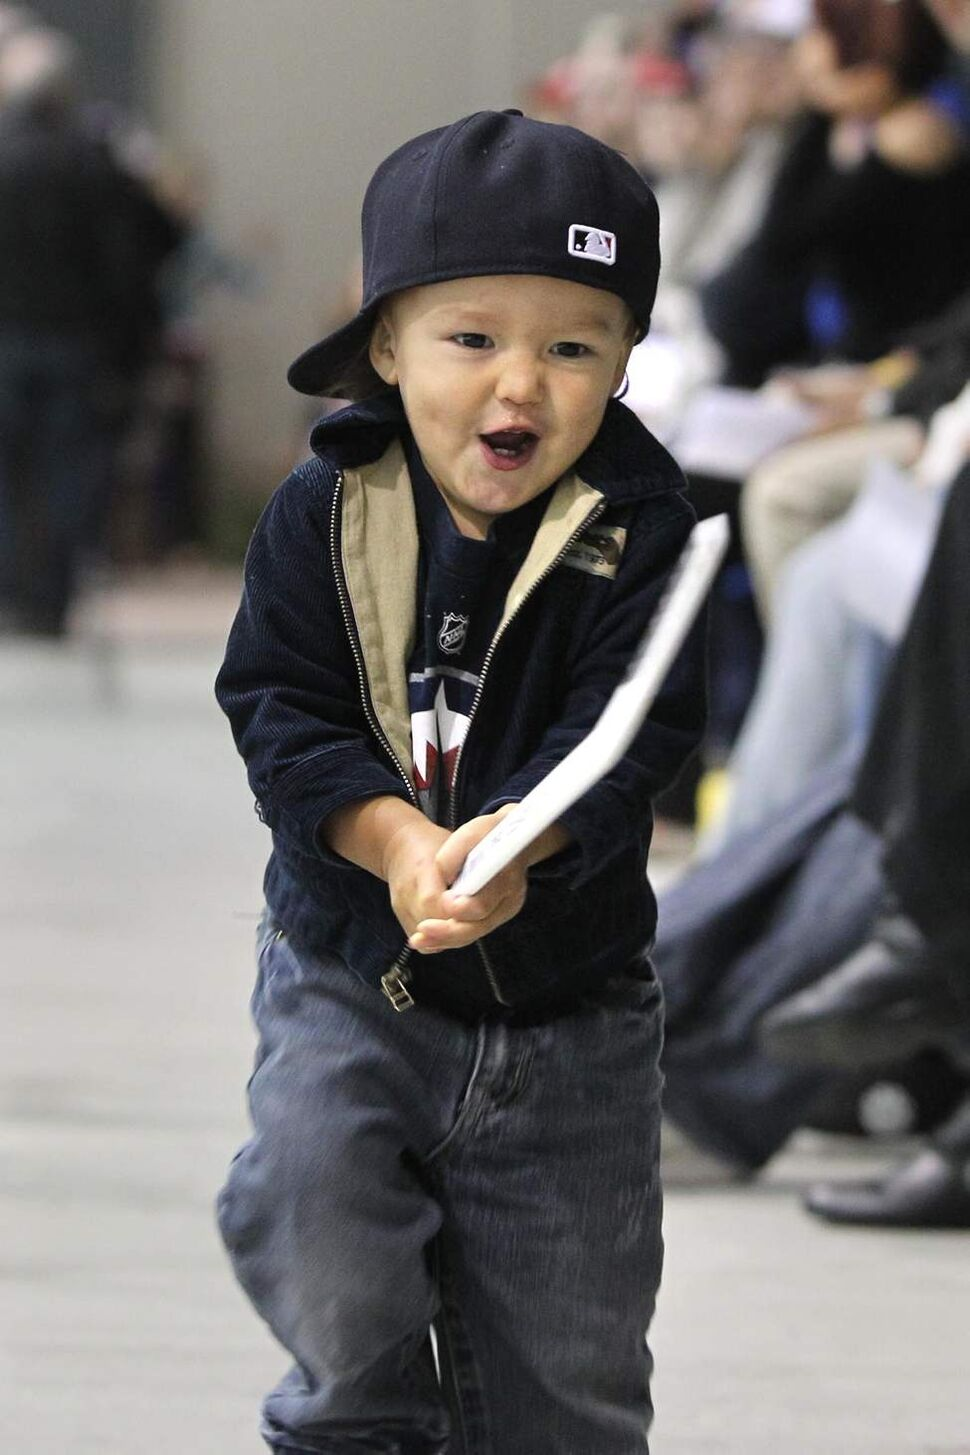 Seventeen-month-old Rocco Nakoyak cheers on the players on the ice during pracitce Saturday. (RUTH BONNEVILLE / WINNIPEG FREE PRESS)